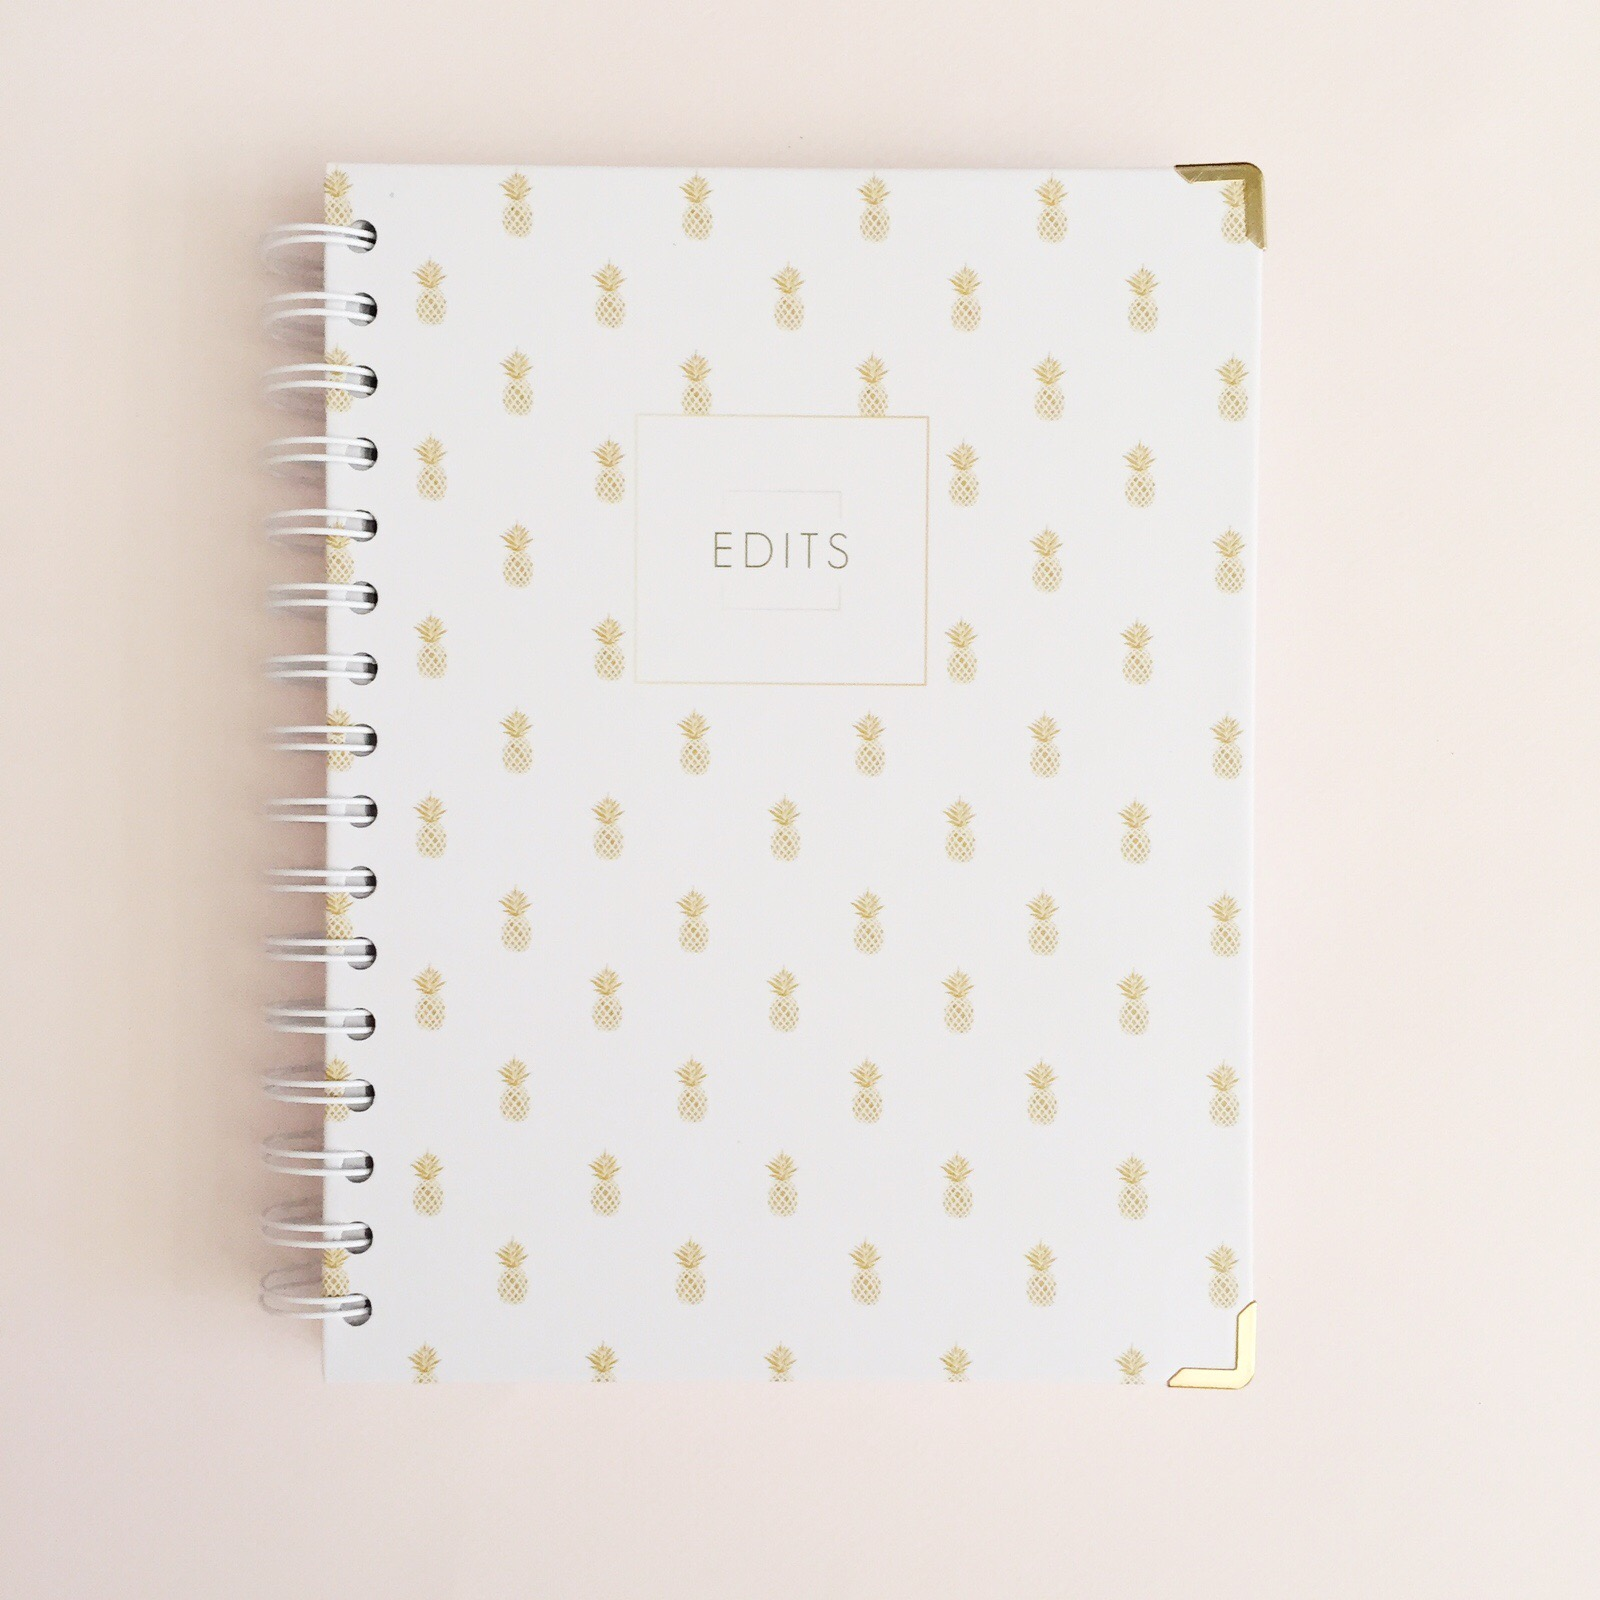 A notebook to compliment Your Weekly Edit 2017. Beautiful covers, high quality paper, durable design, and simple in its essence - our Edits range is there to give you space to write down your dreams, ideas, doodles, or notes. With 100 ruled pages, a pocket in the front cover for loose bits of paper, a ring binder for easy page flipping, strong metal gold corners and thick, 120gsm lined paper to keep things neat, you can rest assured that this notebook can handle your busy every day goings.